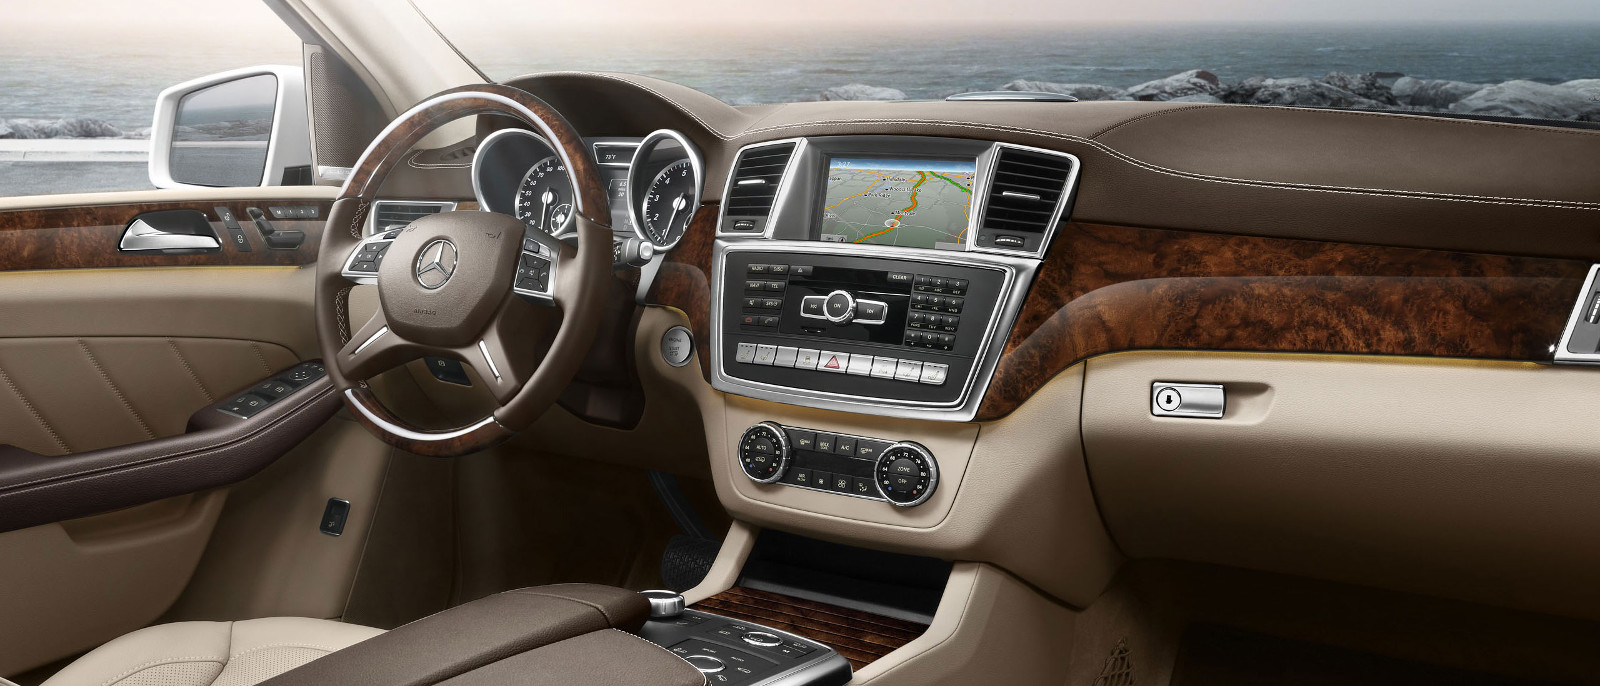 2015 Mercedes-Benz GL550 Interior